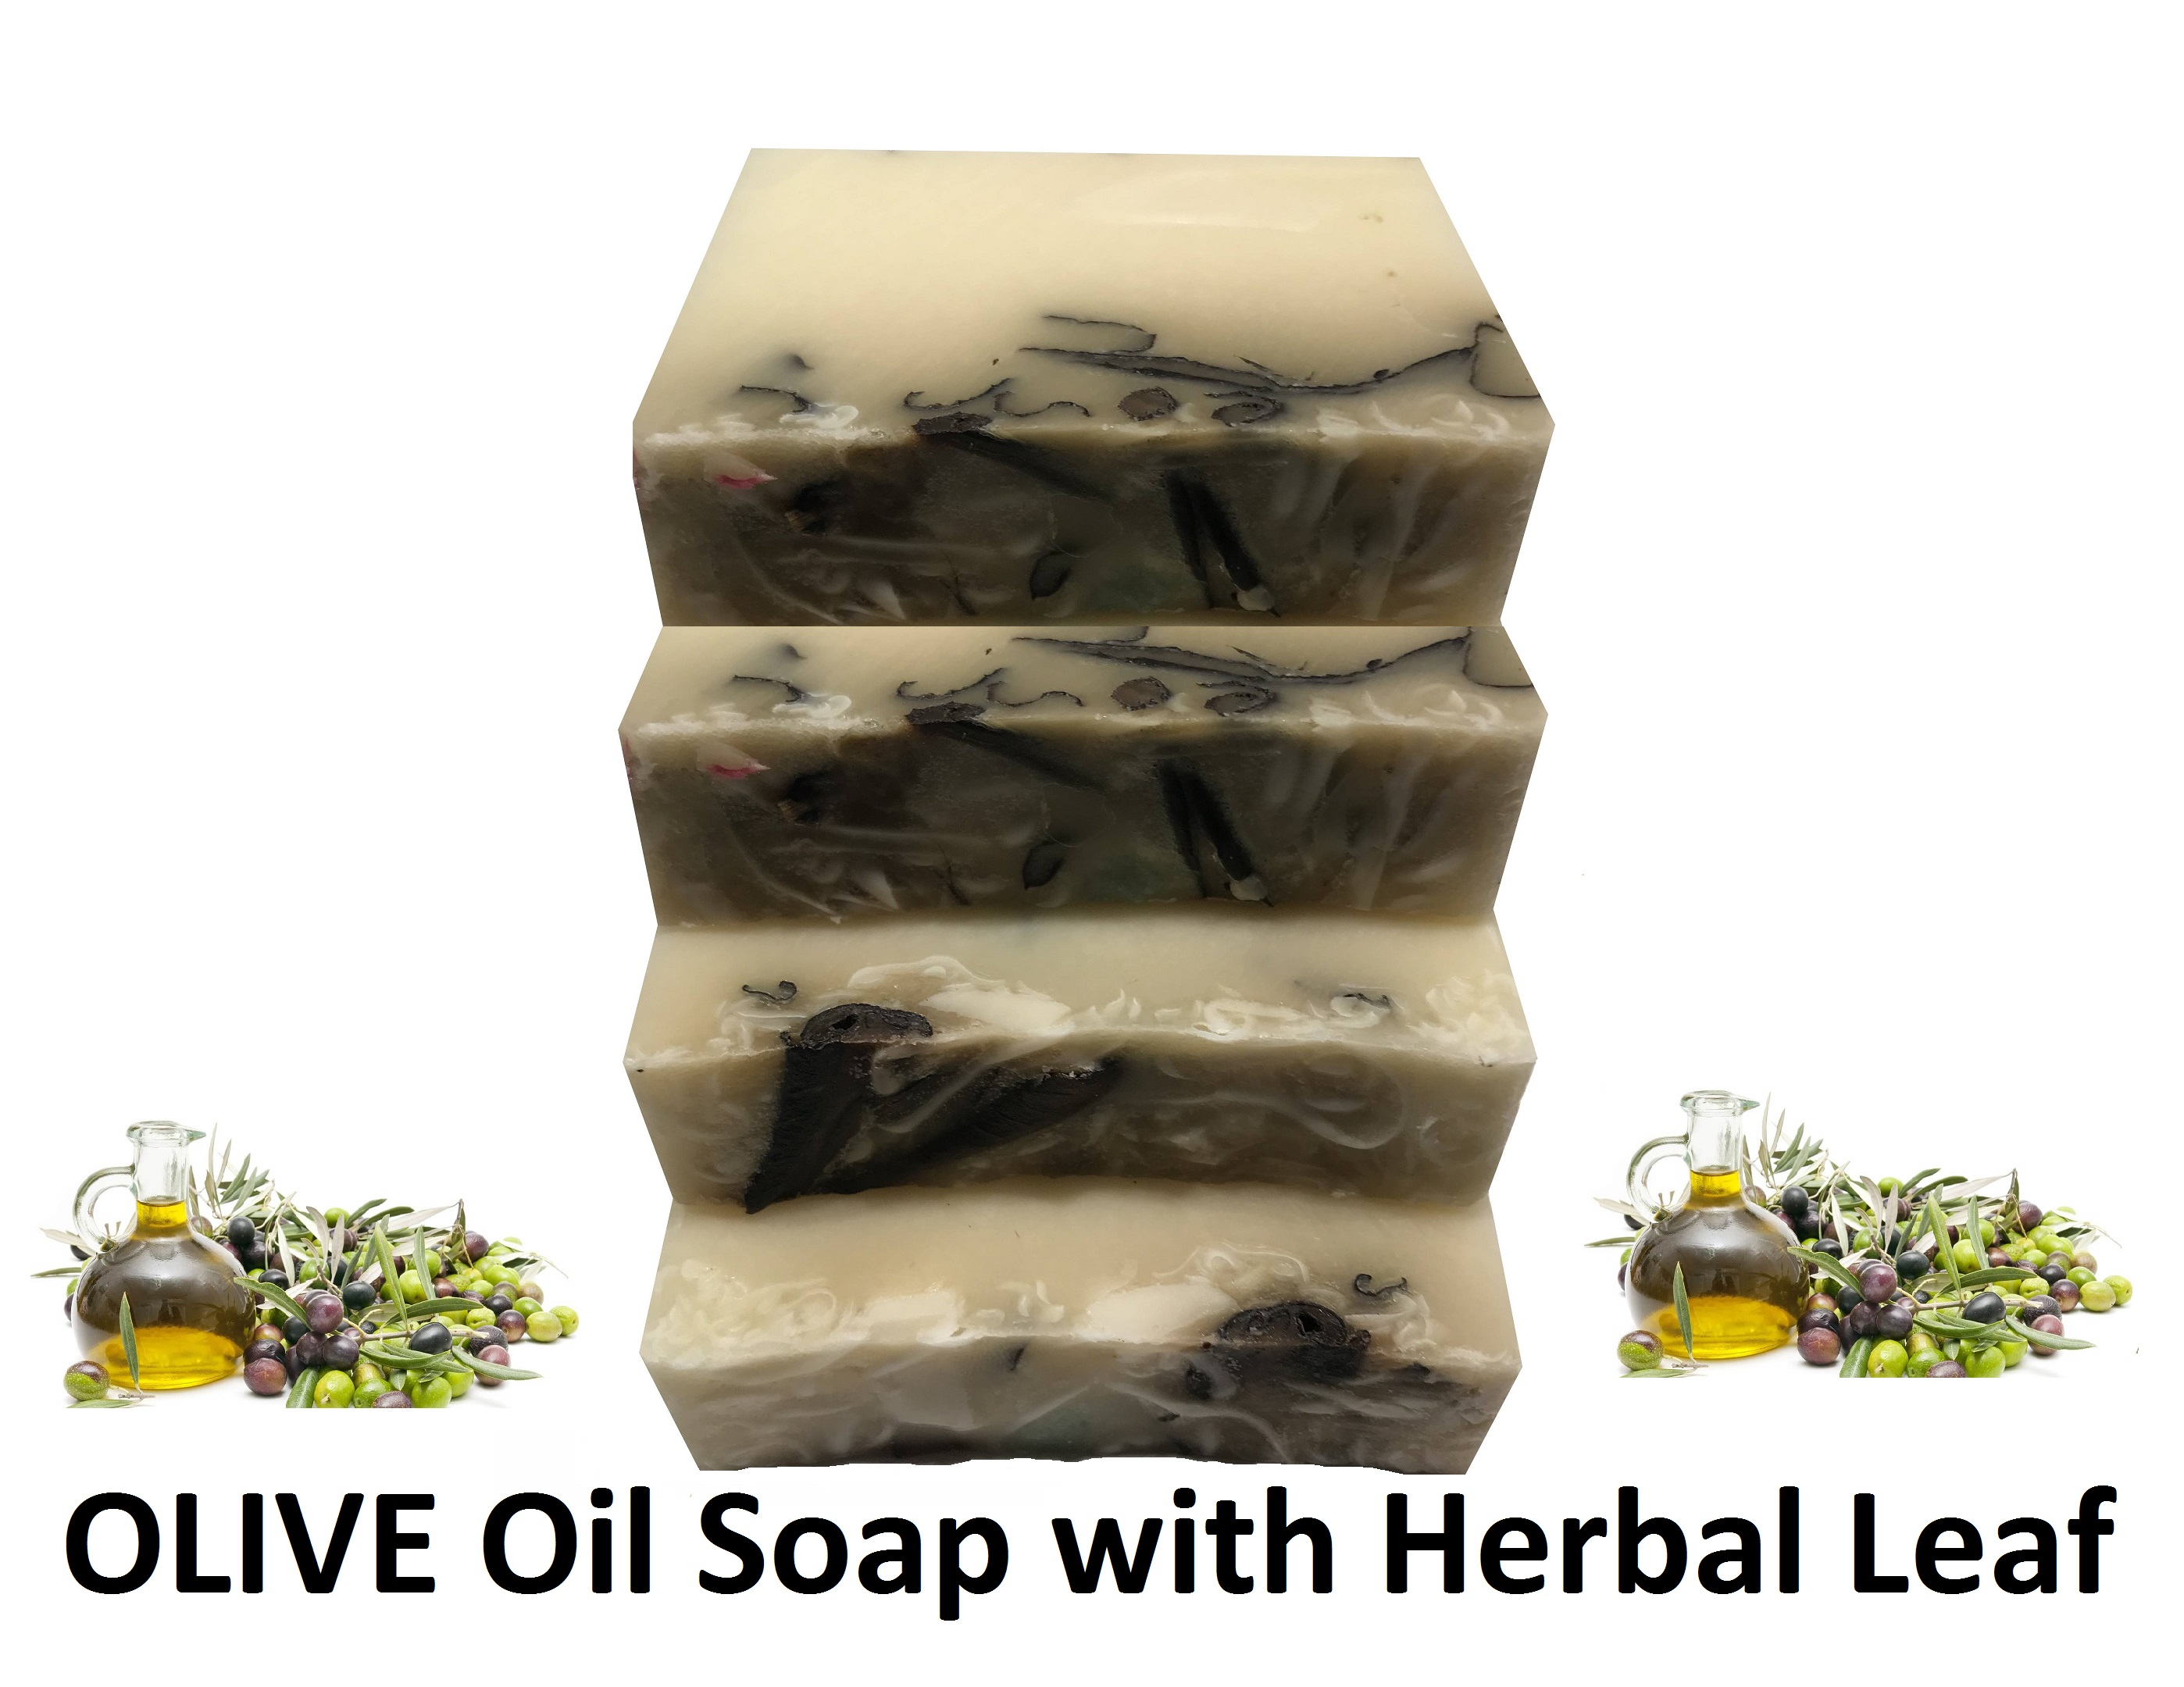 HANDMADE Cold Press OLIVE Oil Soap With Herbal Leaf Oleic Acid Skin Tone Moisturizer Effect 400gr